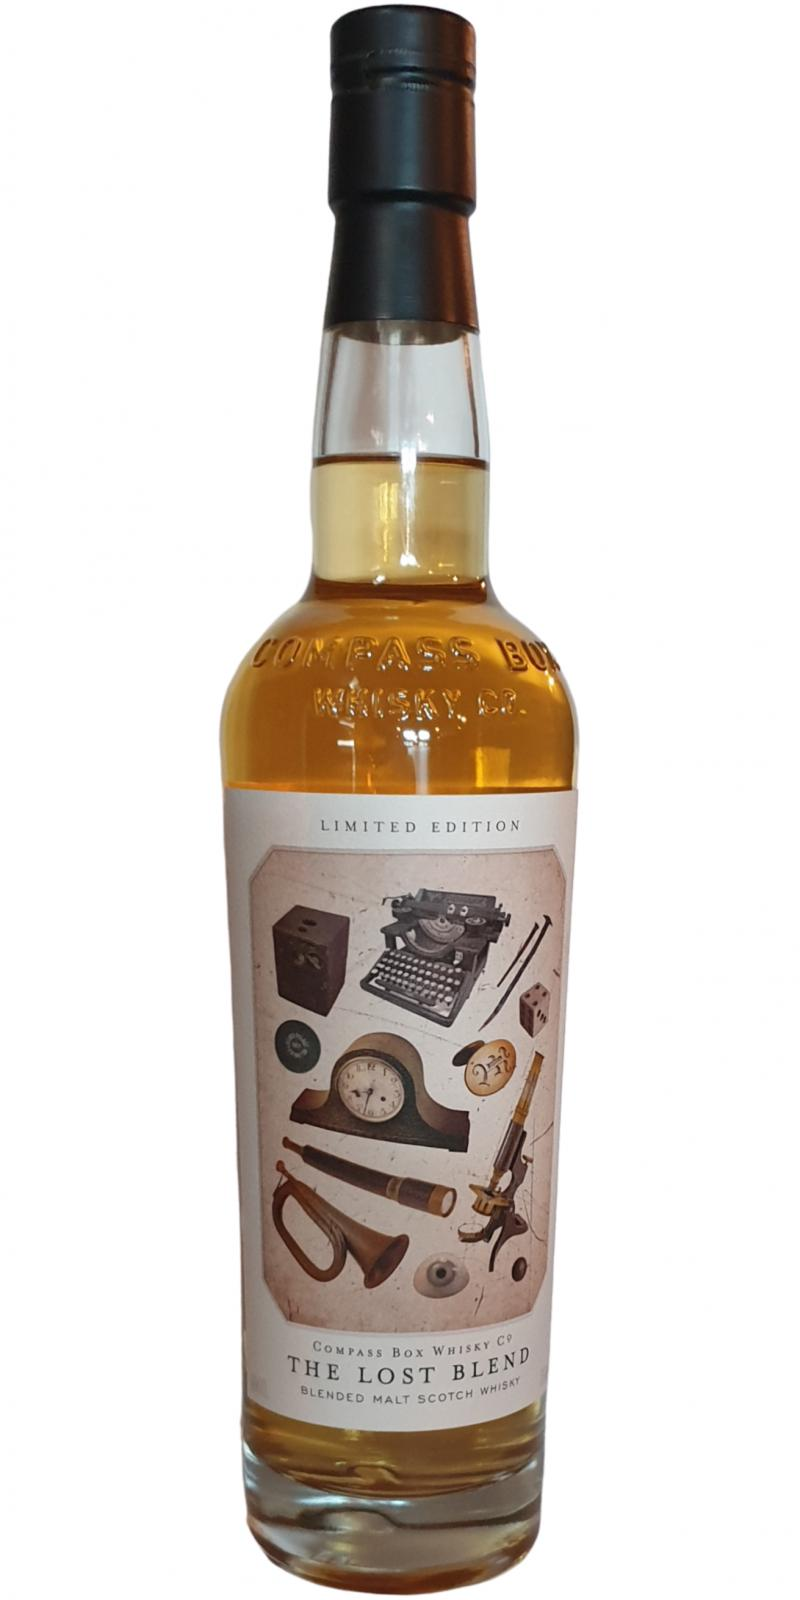 The Lost Blend Blended Malt Scotch Whisky CB